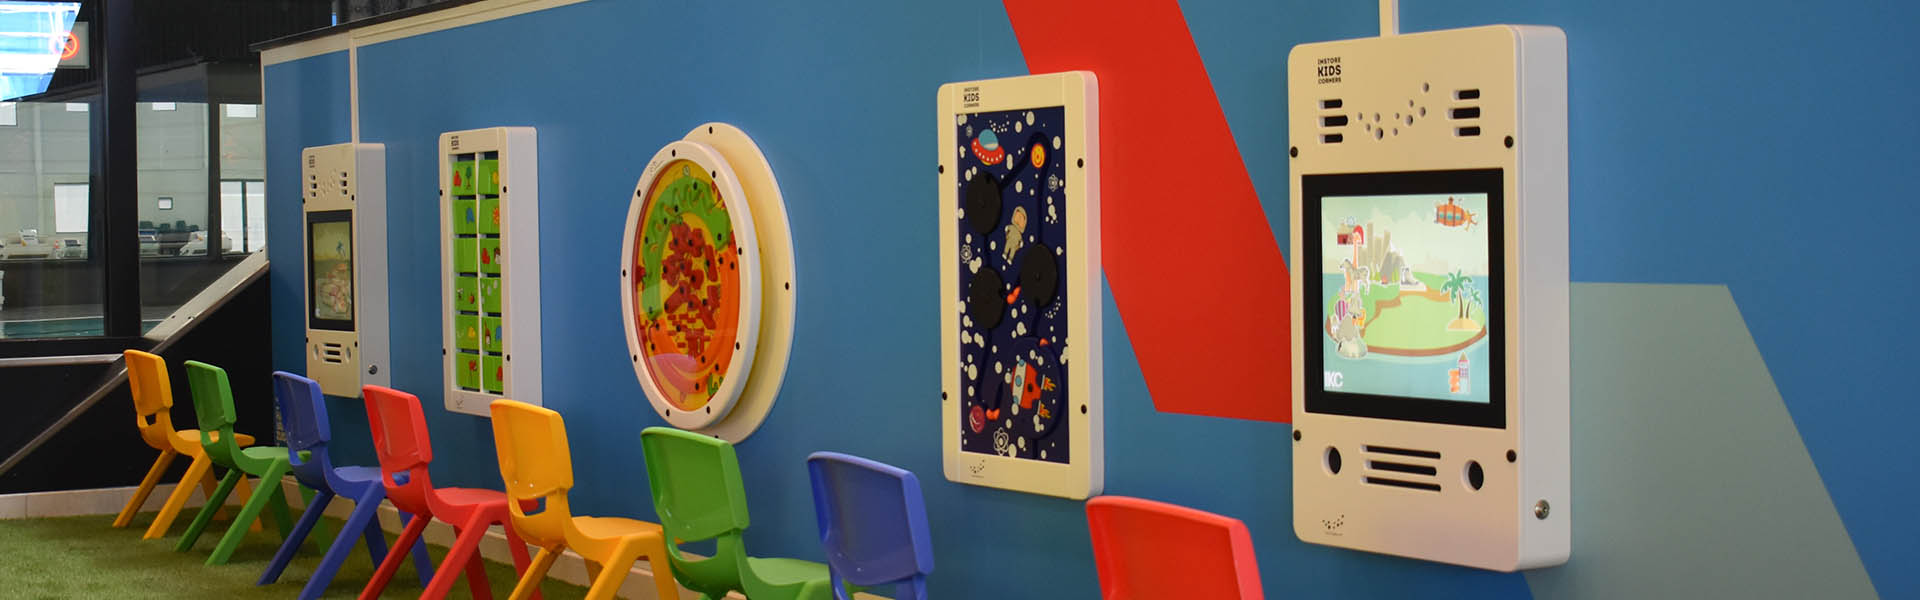 This image shows an interactive Play corner leisure